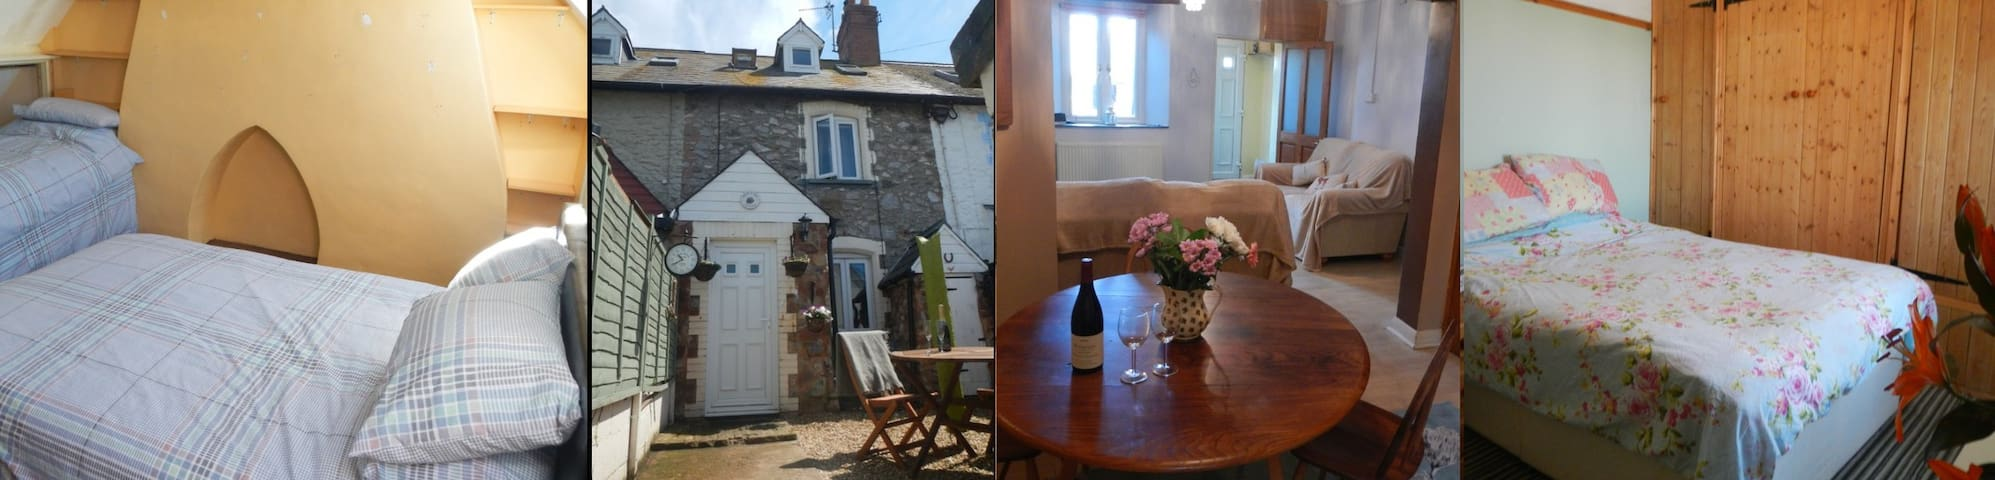 3 Bed Cottage in Sea Side Town Watchet near Exmoor - Watchet - บ้าน